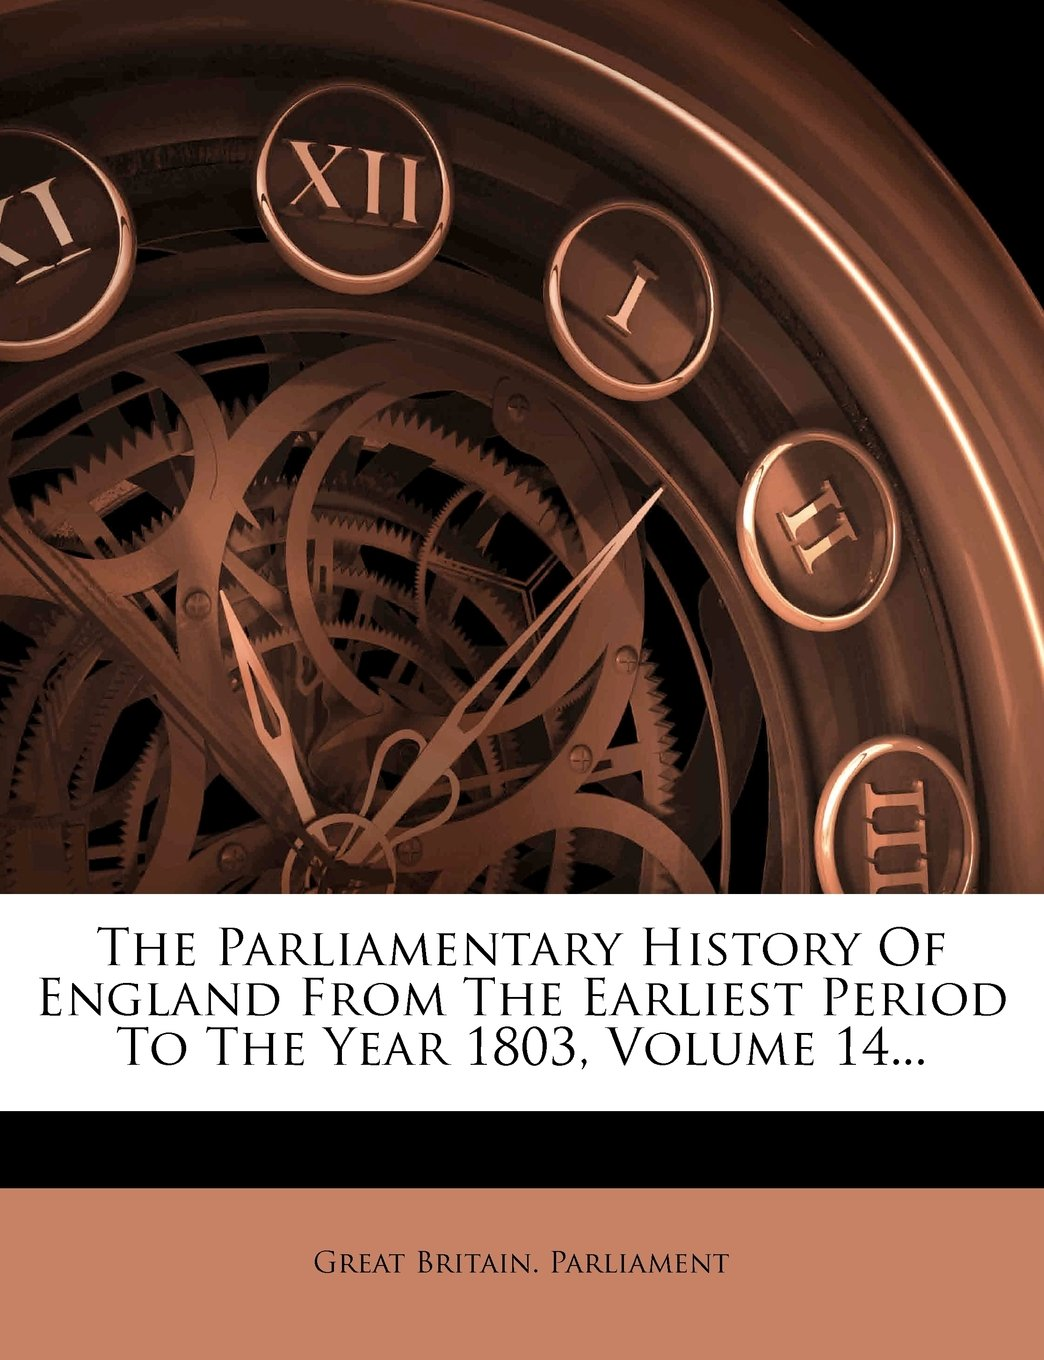 The Parliamentary History Of England From The Earliest Period To The Year 1803, Volume 14... PDF